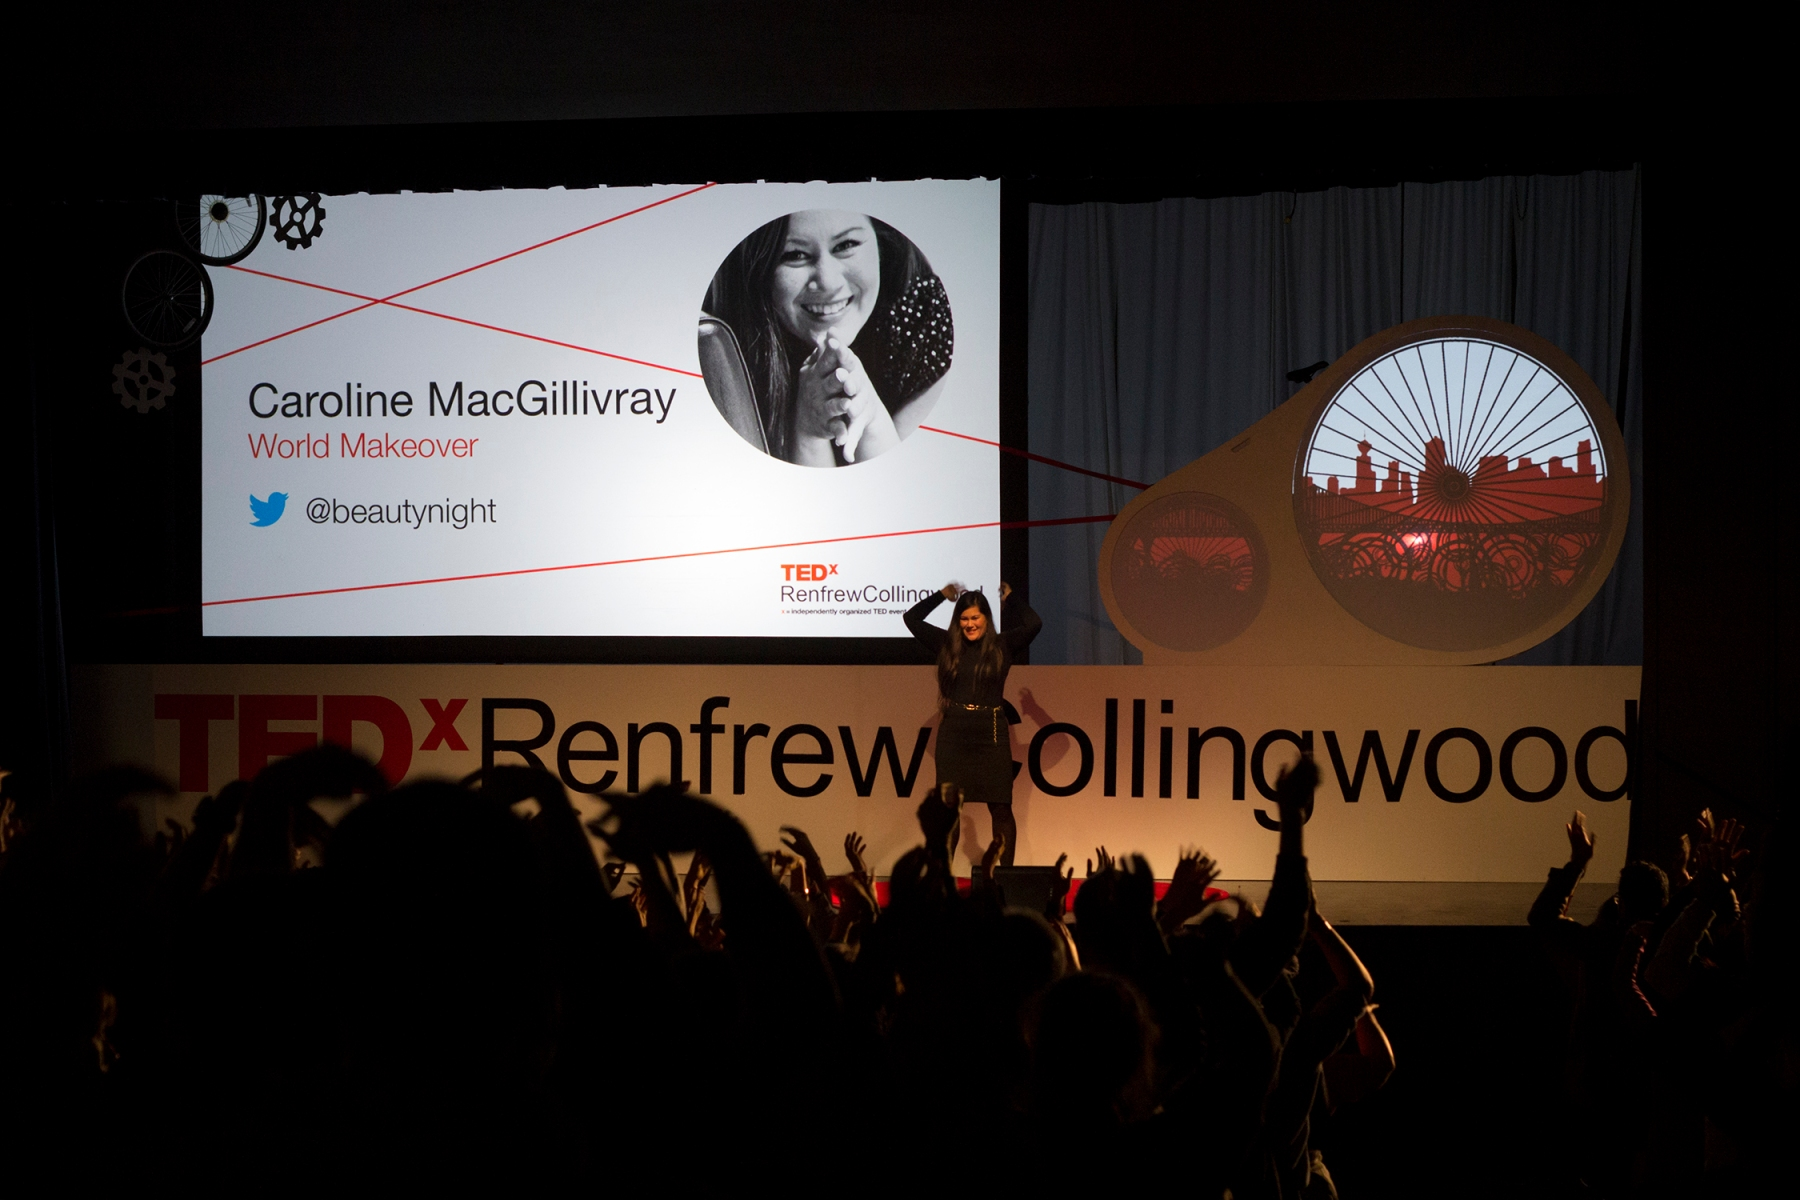 Caroline MacGillivray at TEDxRCW at Windermere Community School on October 19, 2013